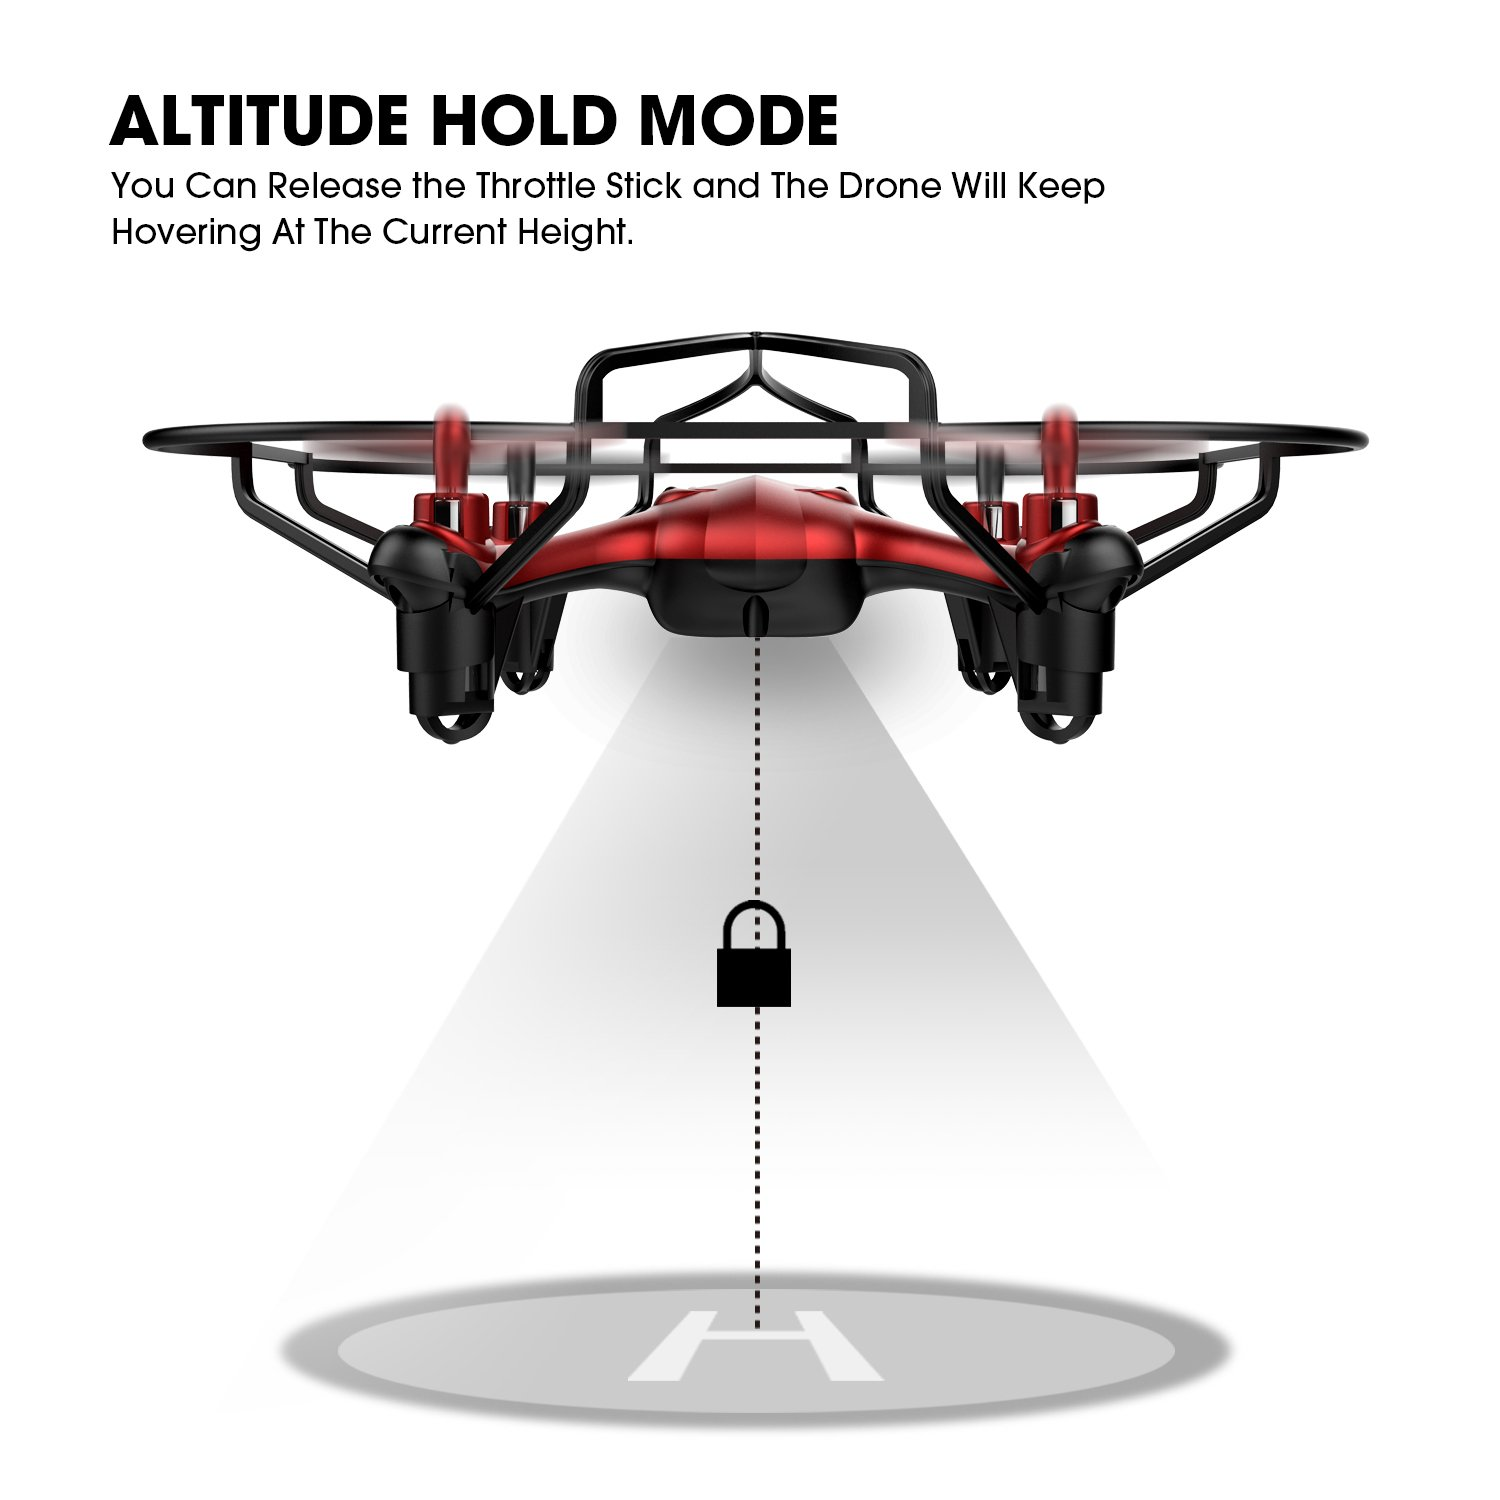 TEC.BEAN Mini Drone for Beginners Hovering Quadcopter with Altitude Hold Mode One Key Take Off Landing Return Home Entry Level for Kids by TEC.BEAN (Image #4)